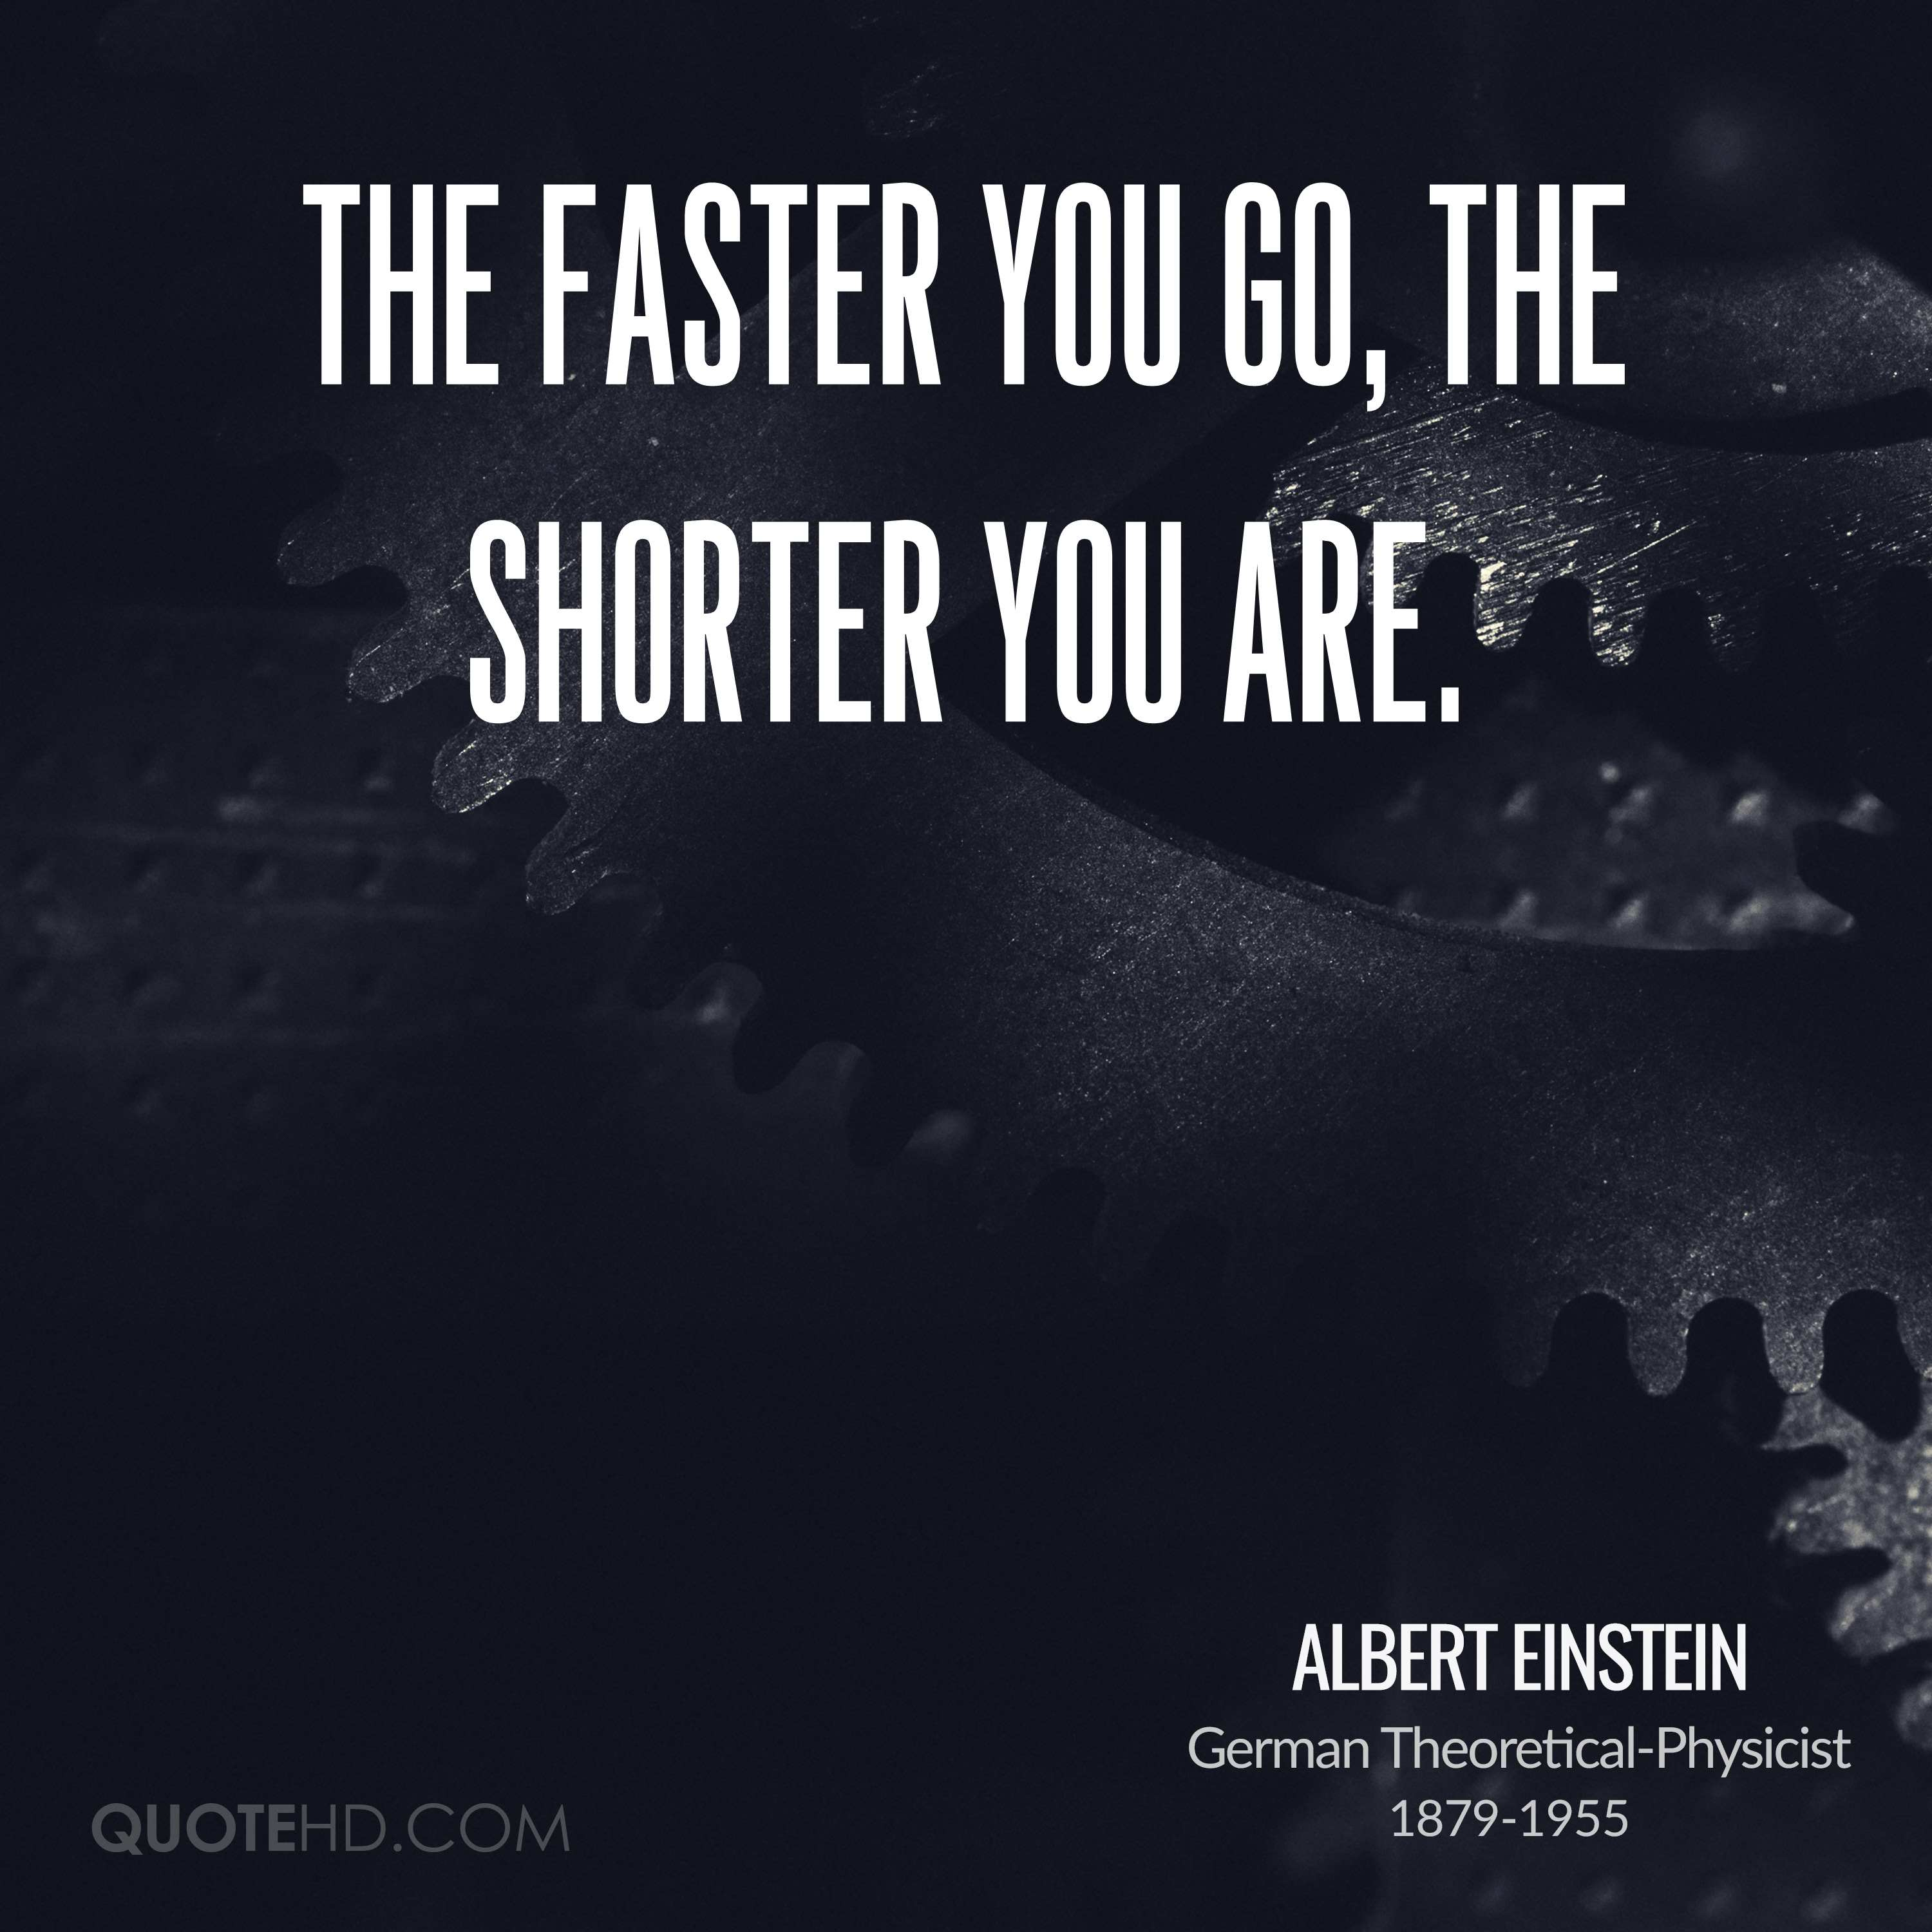 The faster you go, the shorter you are.